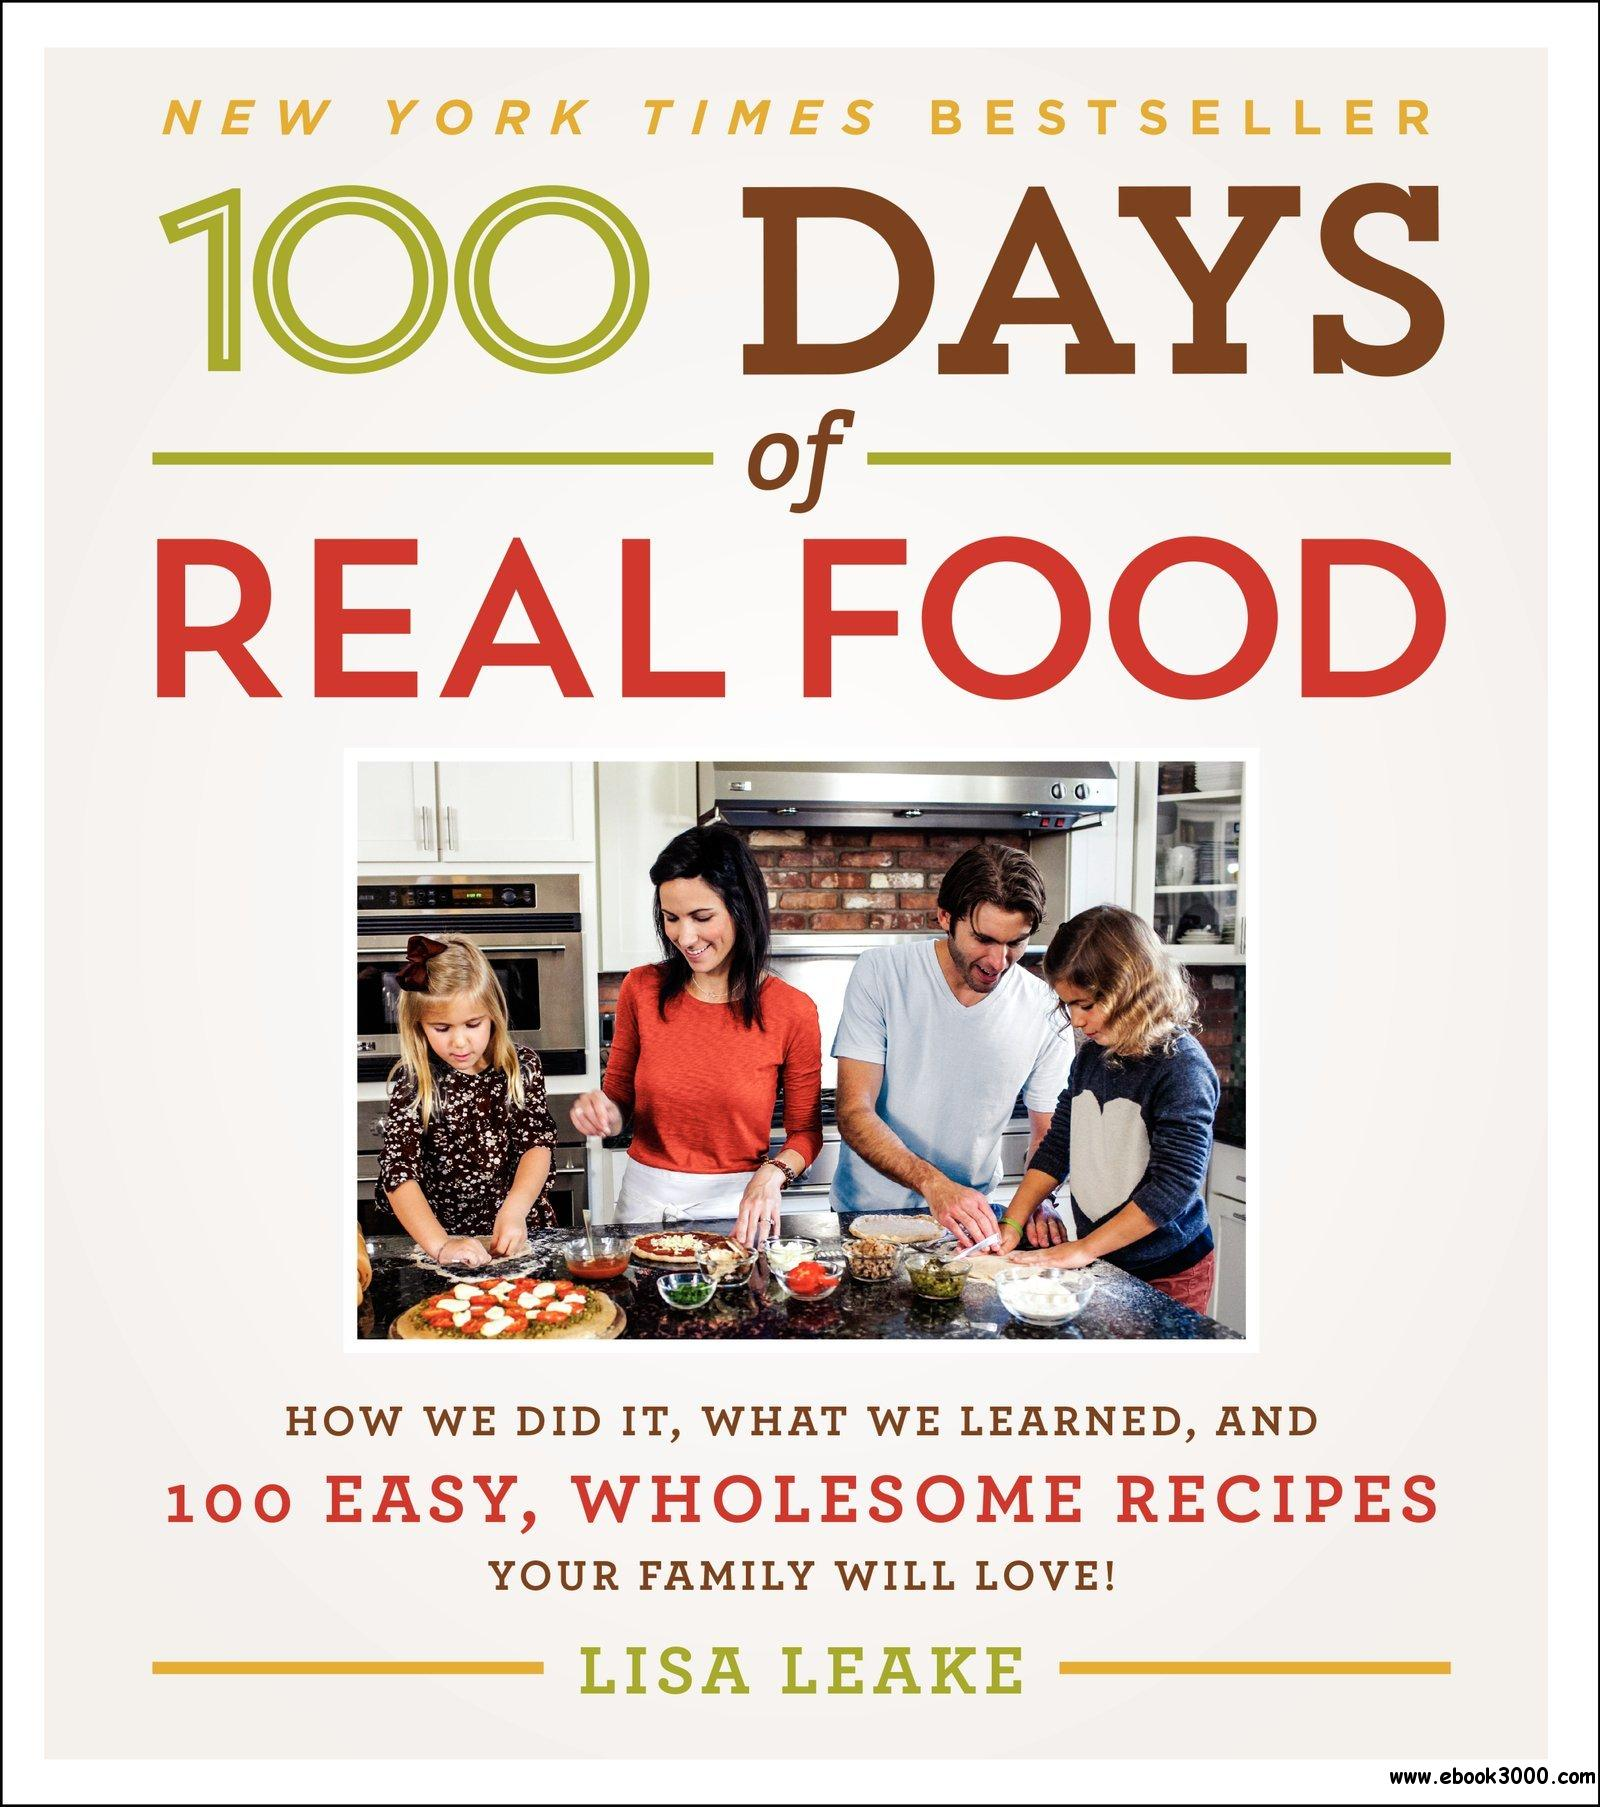 100 Days of Real Food: How We Did It, What We Learned, and 100 Easy, Wholesome Recipes free download